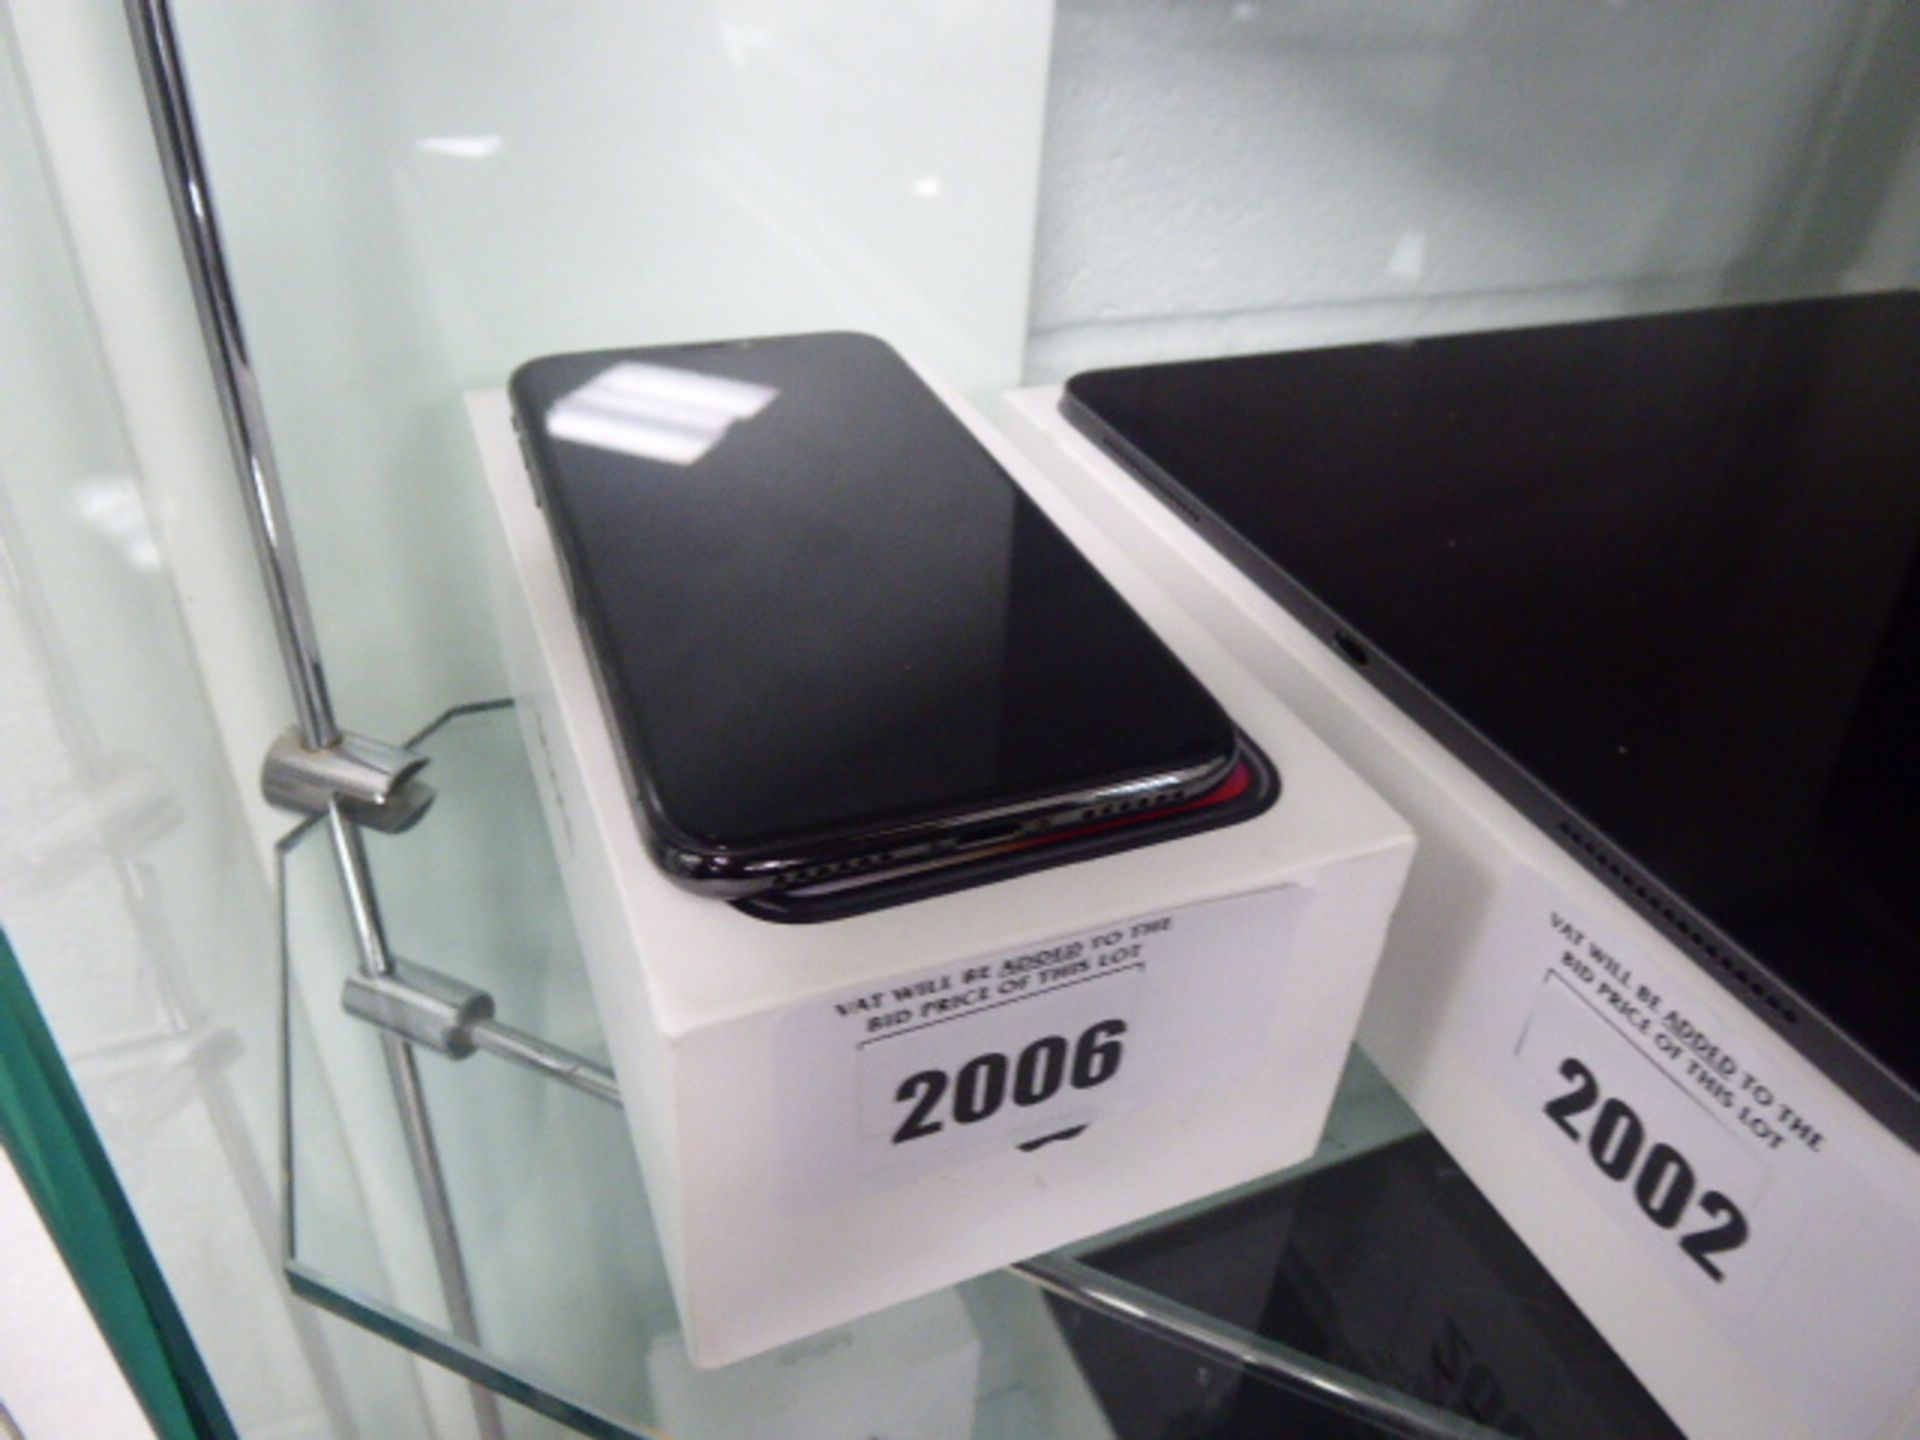 Lot 2006 - Apple I phone XS silver 64GB mobile with box, model A2097